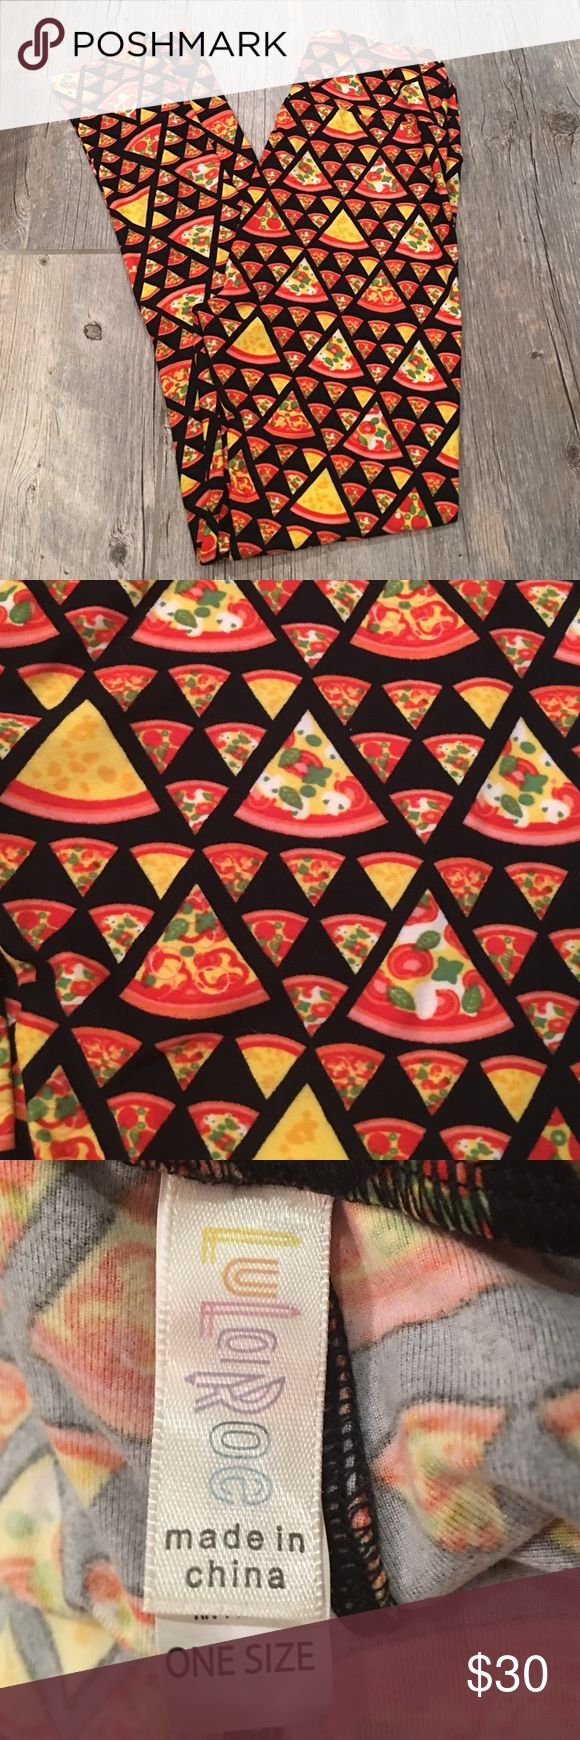 LuLaRoe pizza leggings NWOT OS These are ultra stretchy and super soft. They're as close to your own skin as you can get with all the perks of, ahem, not being naked. ***Please note that lularoe leggings are rumored to run small in some patterns I have not tried these on. They look normal to me.  LuLaRoe Pants Leggings